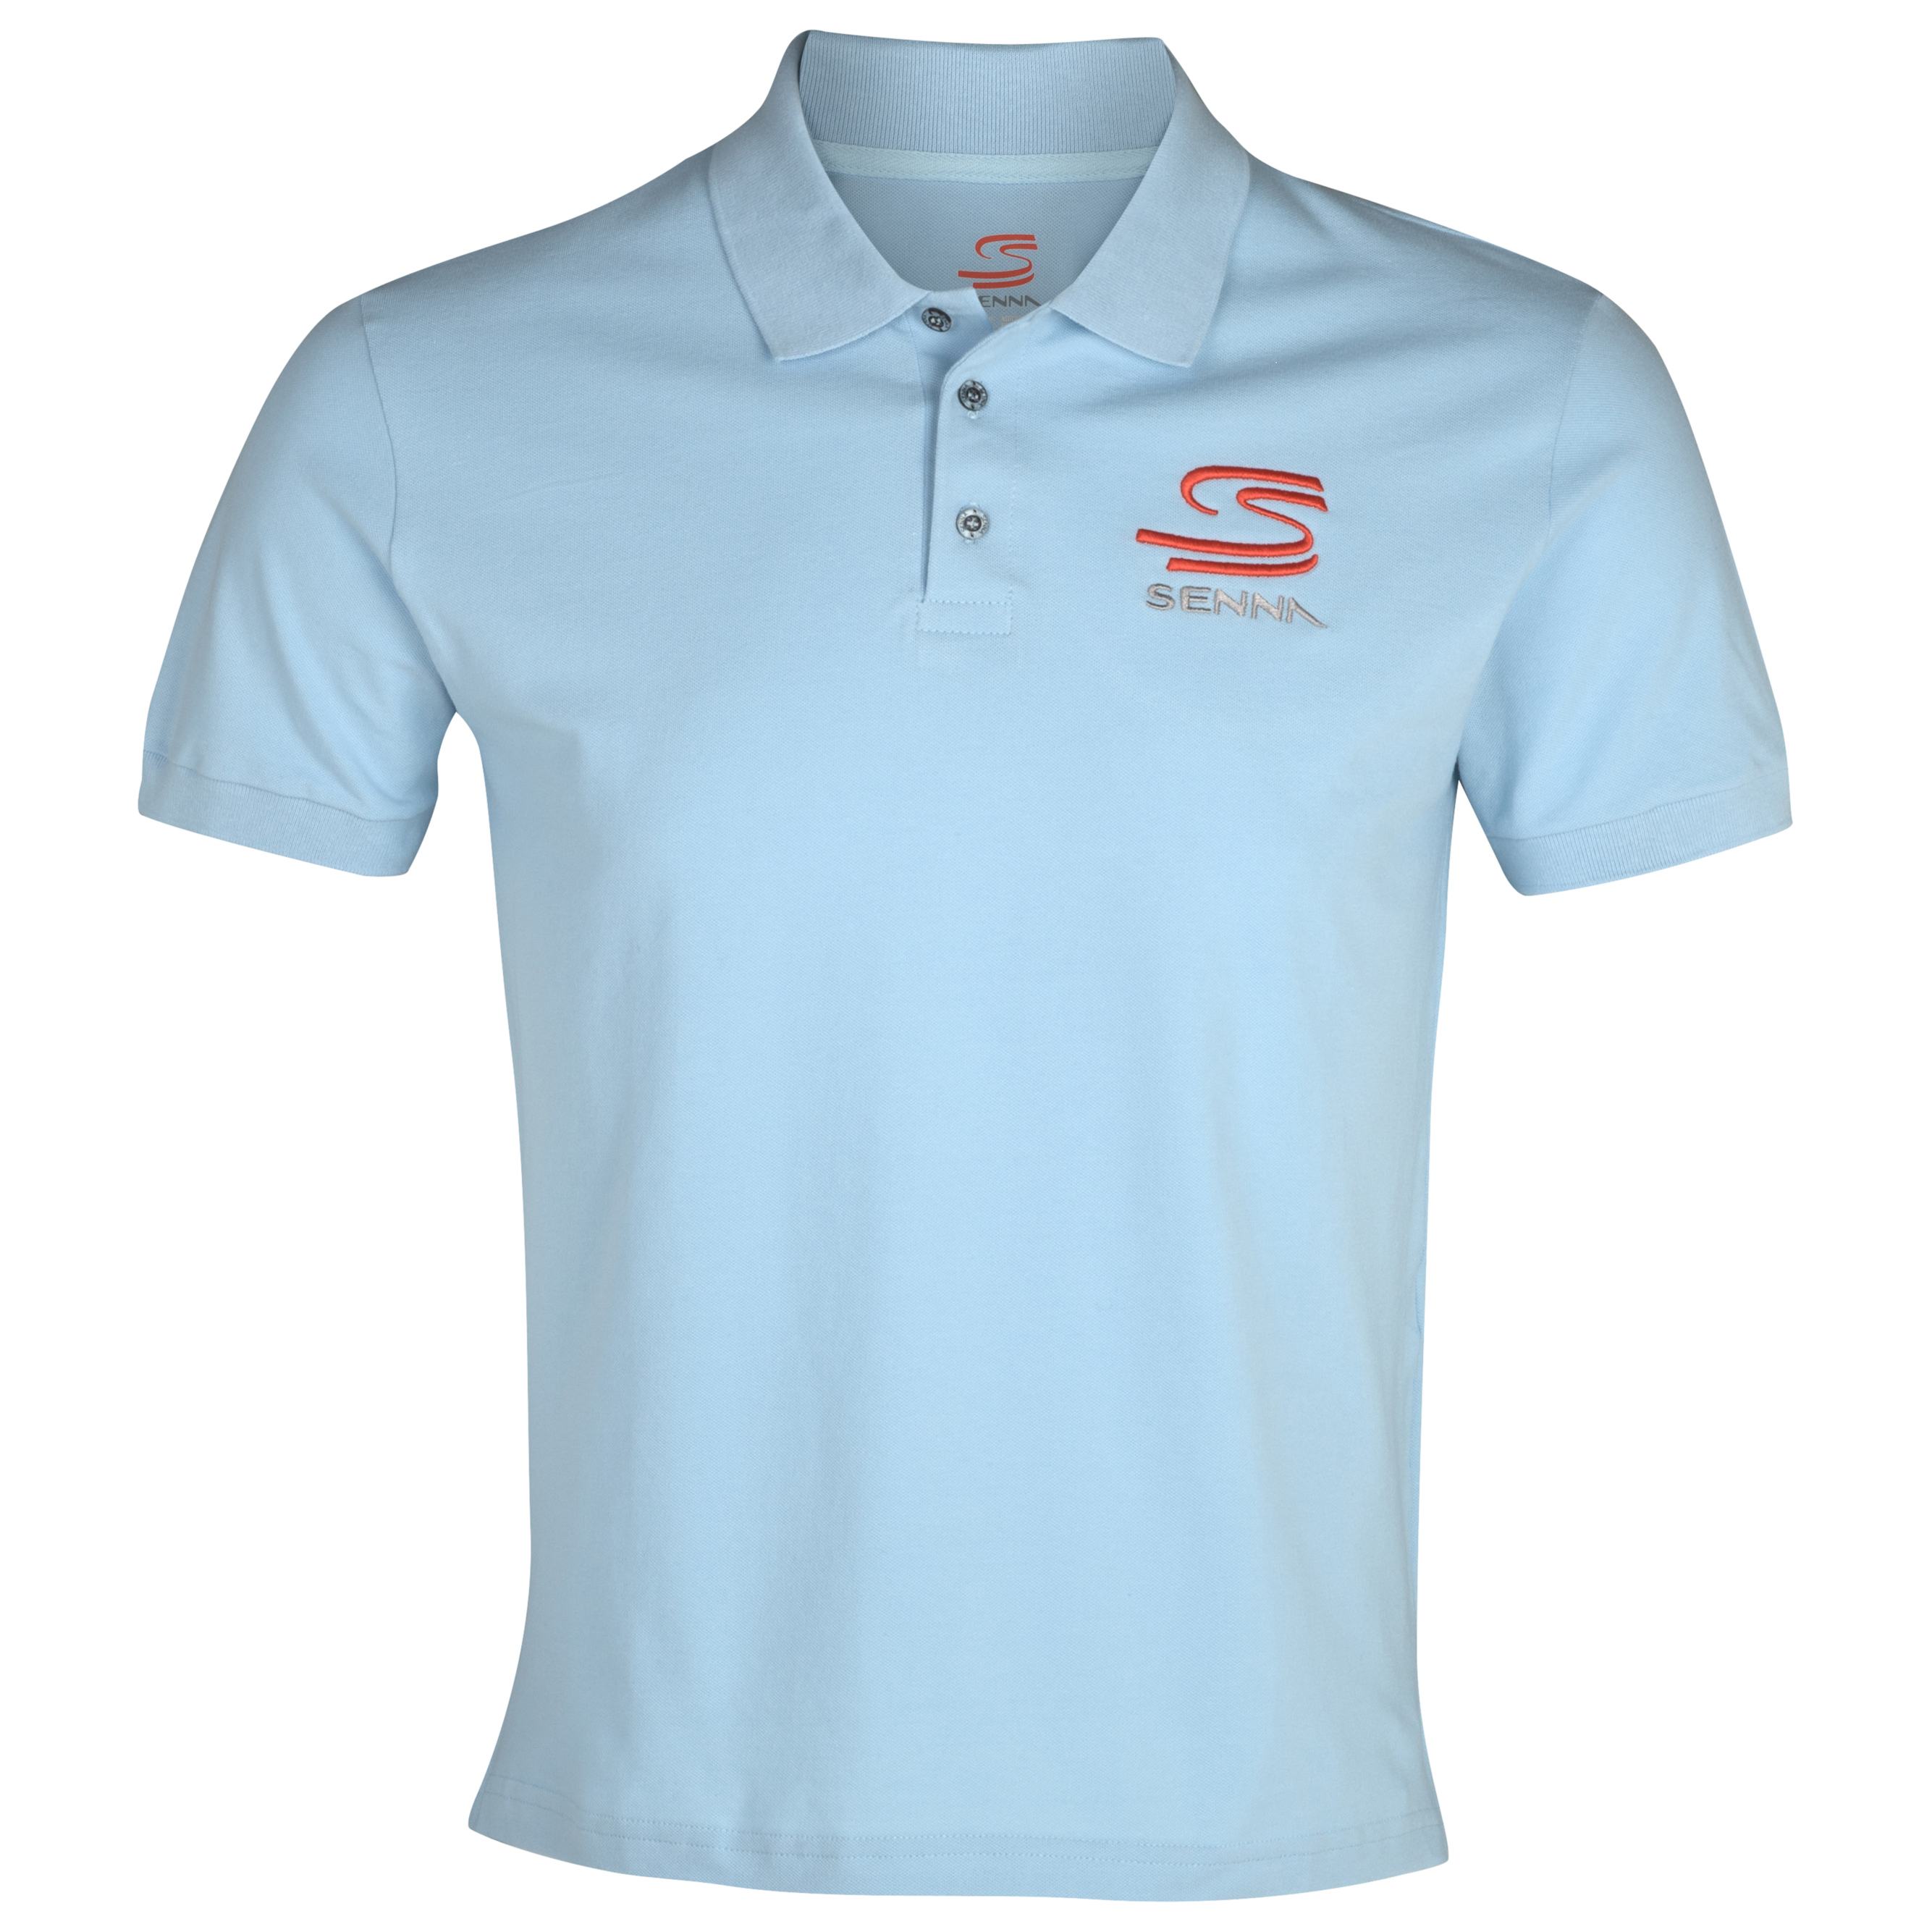 Ayrton Senna Double S Polo - Blue